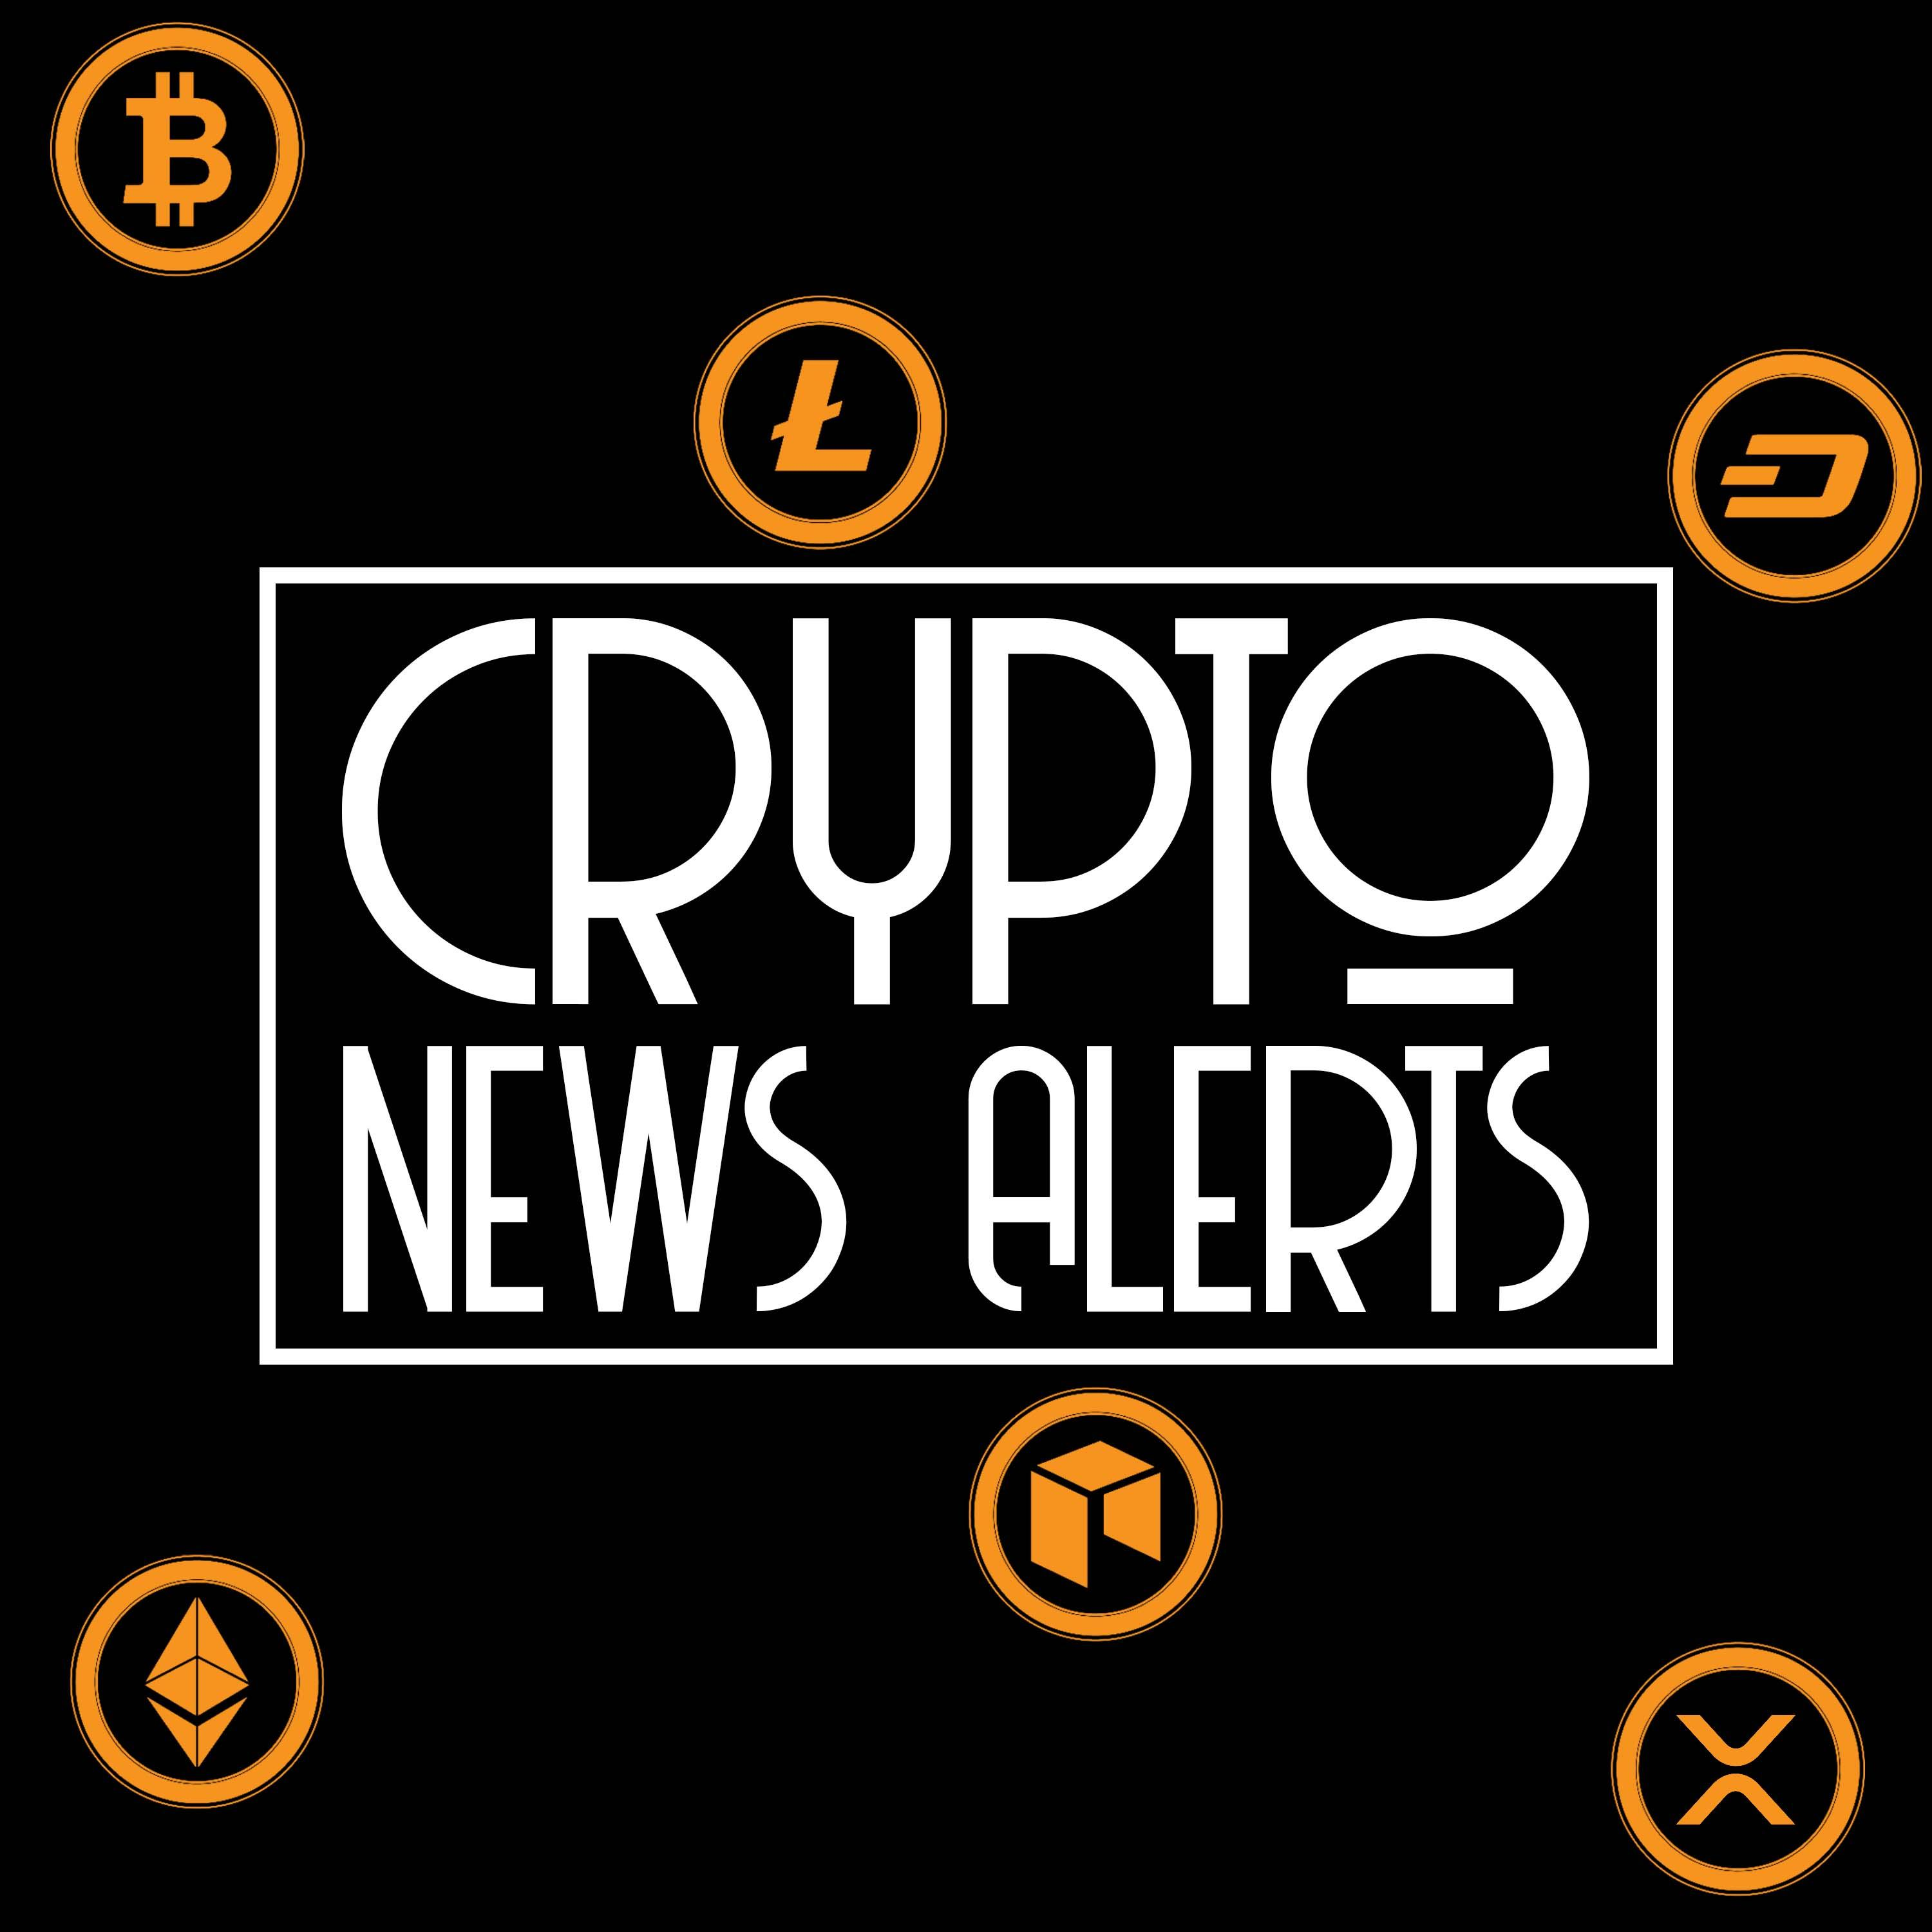 cryptocurrency price alerts phone call